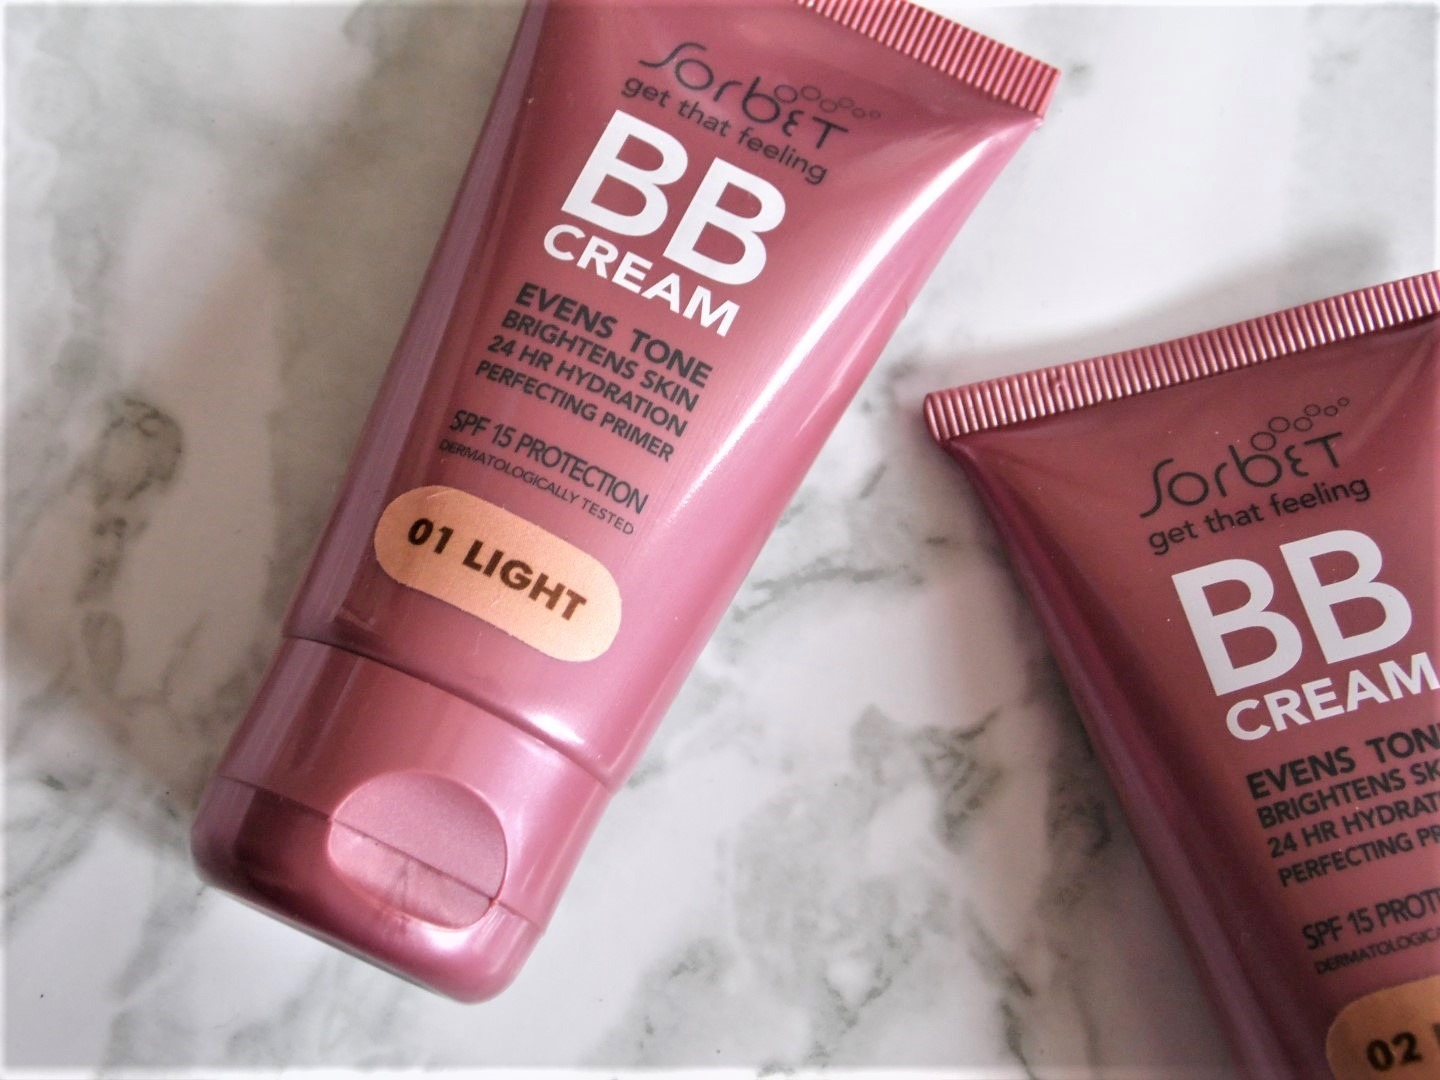 Sorbet BB Cream - By Megan Kelly